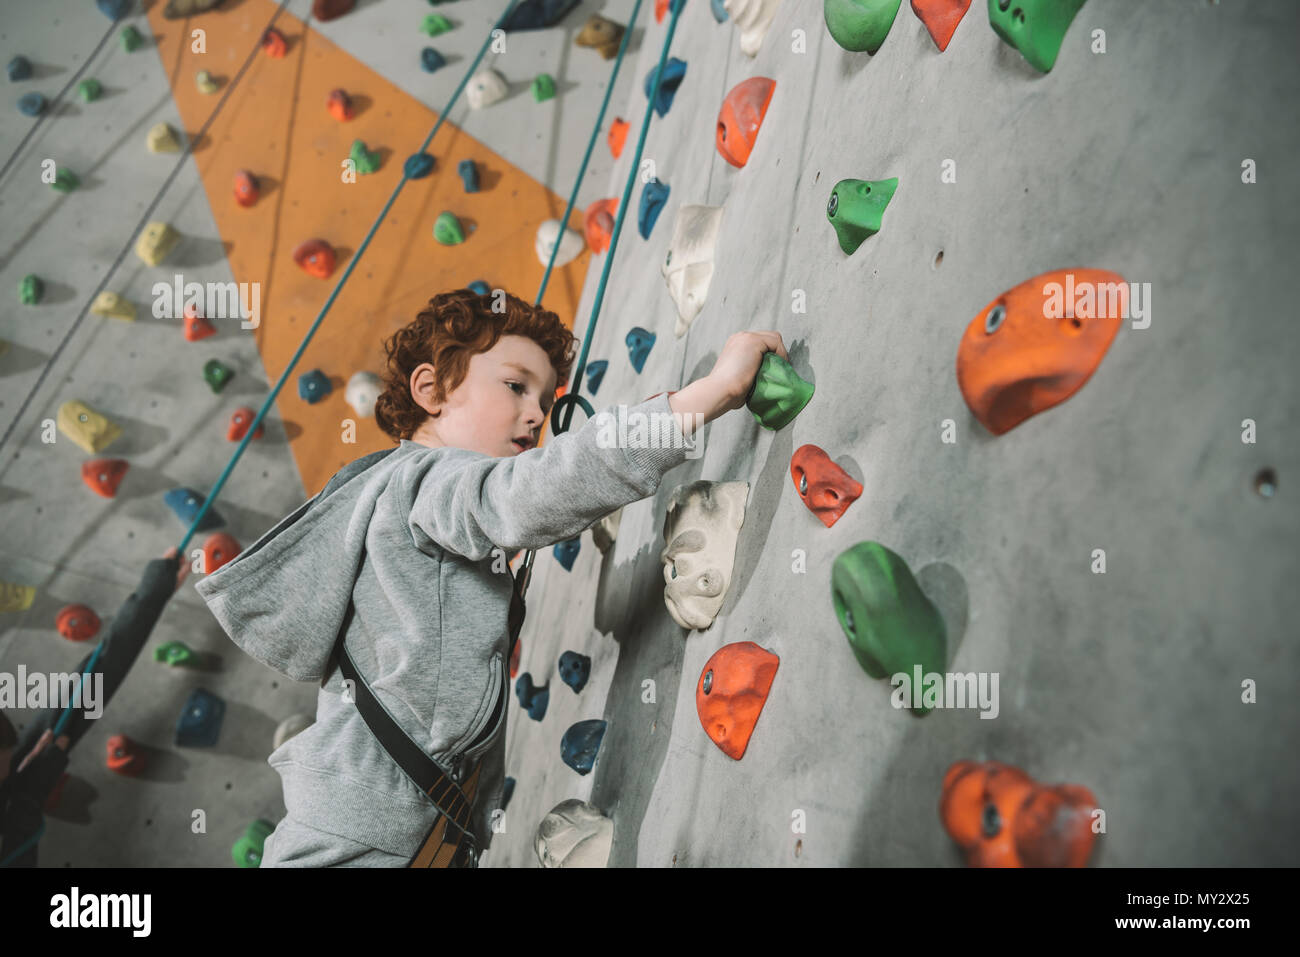 Half-length shot of little boy in a harness climbing a wall with grips at gym - Stock Image